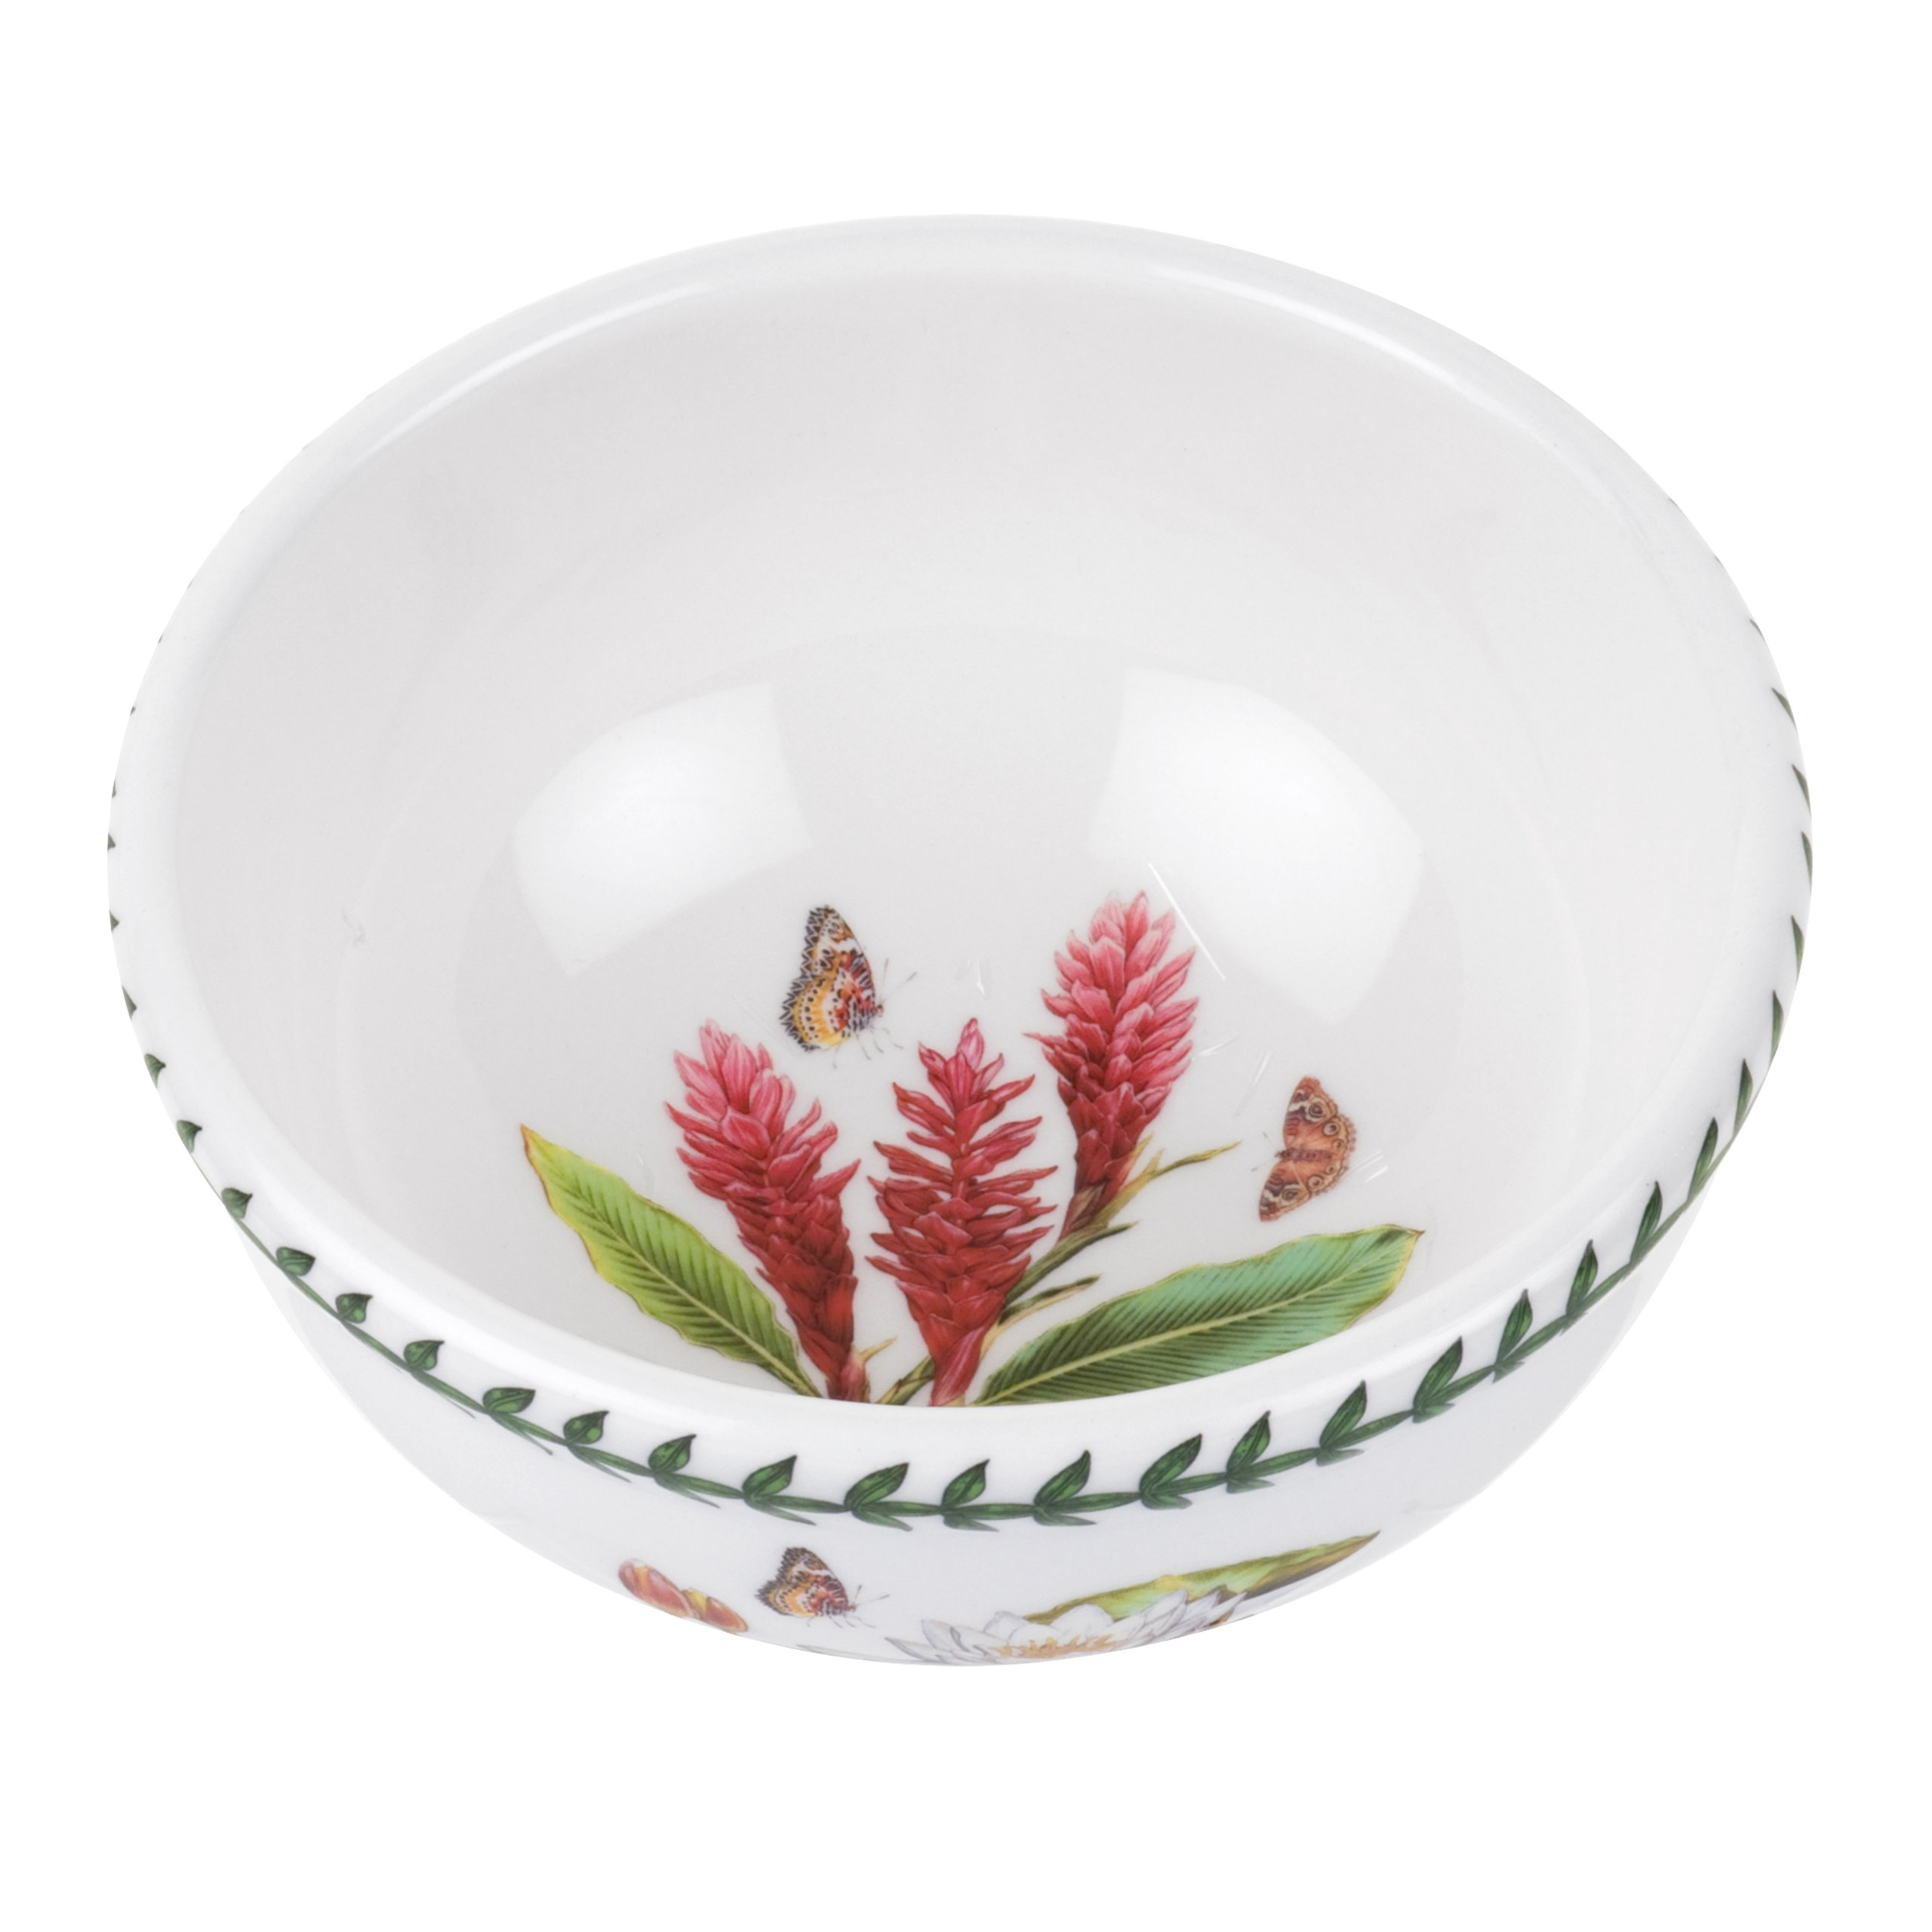 Portmeirion Exotic Botanic Garden Individual Fruit Salad Bowl with Red Ginger, Set of 6